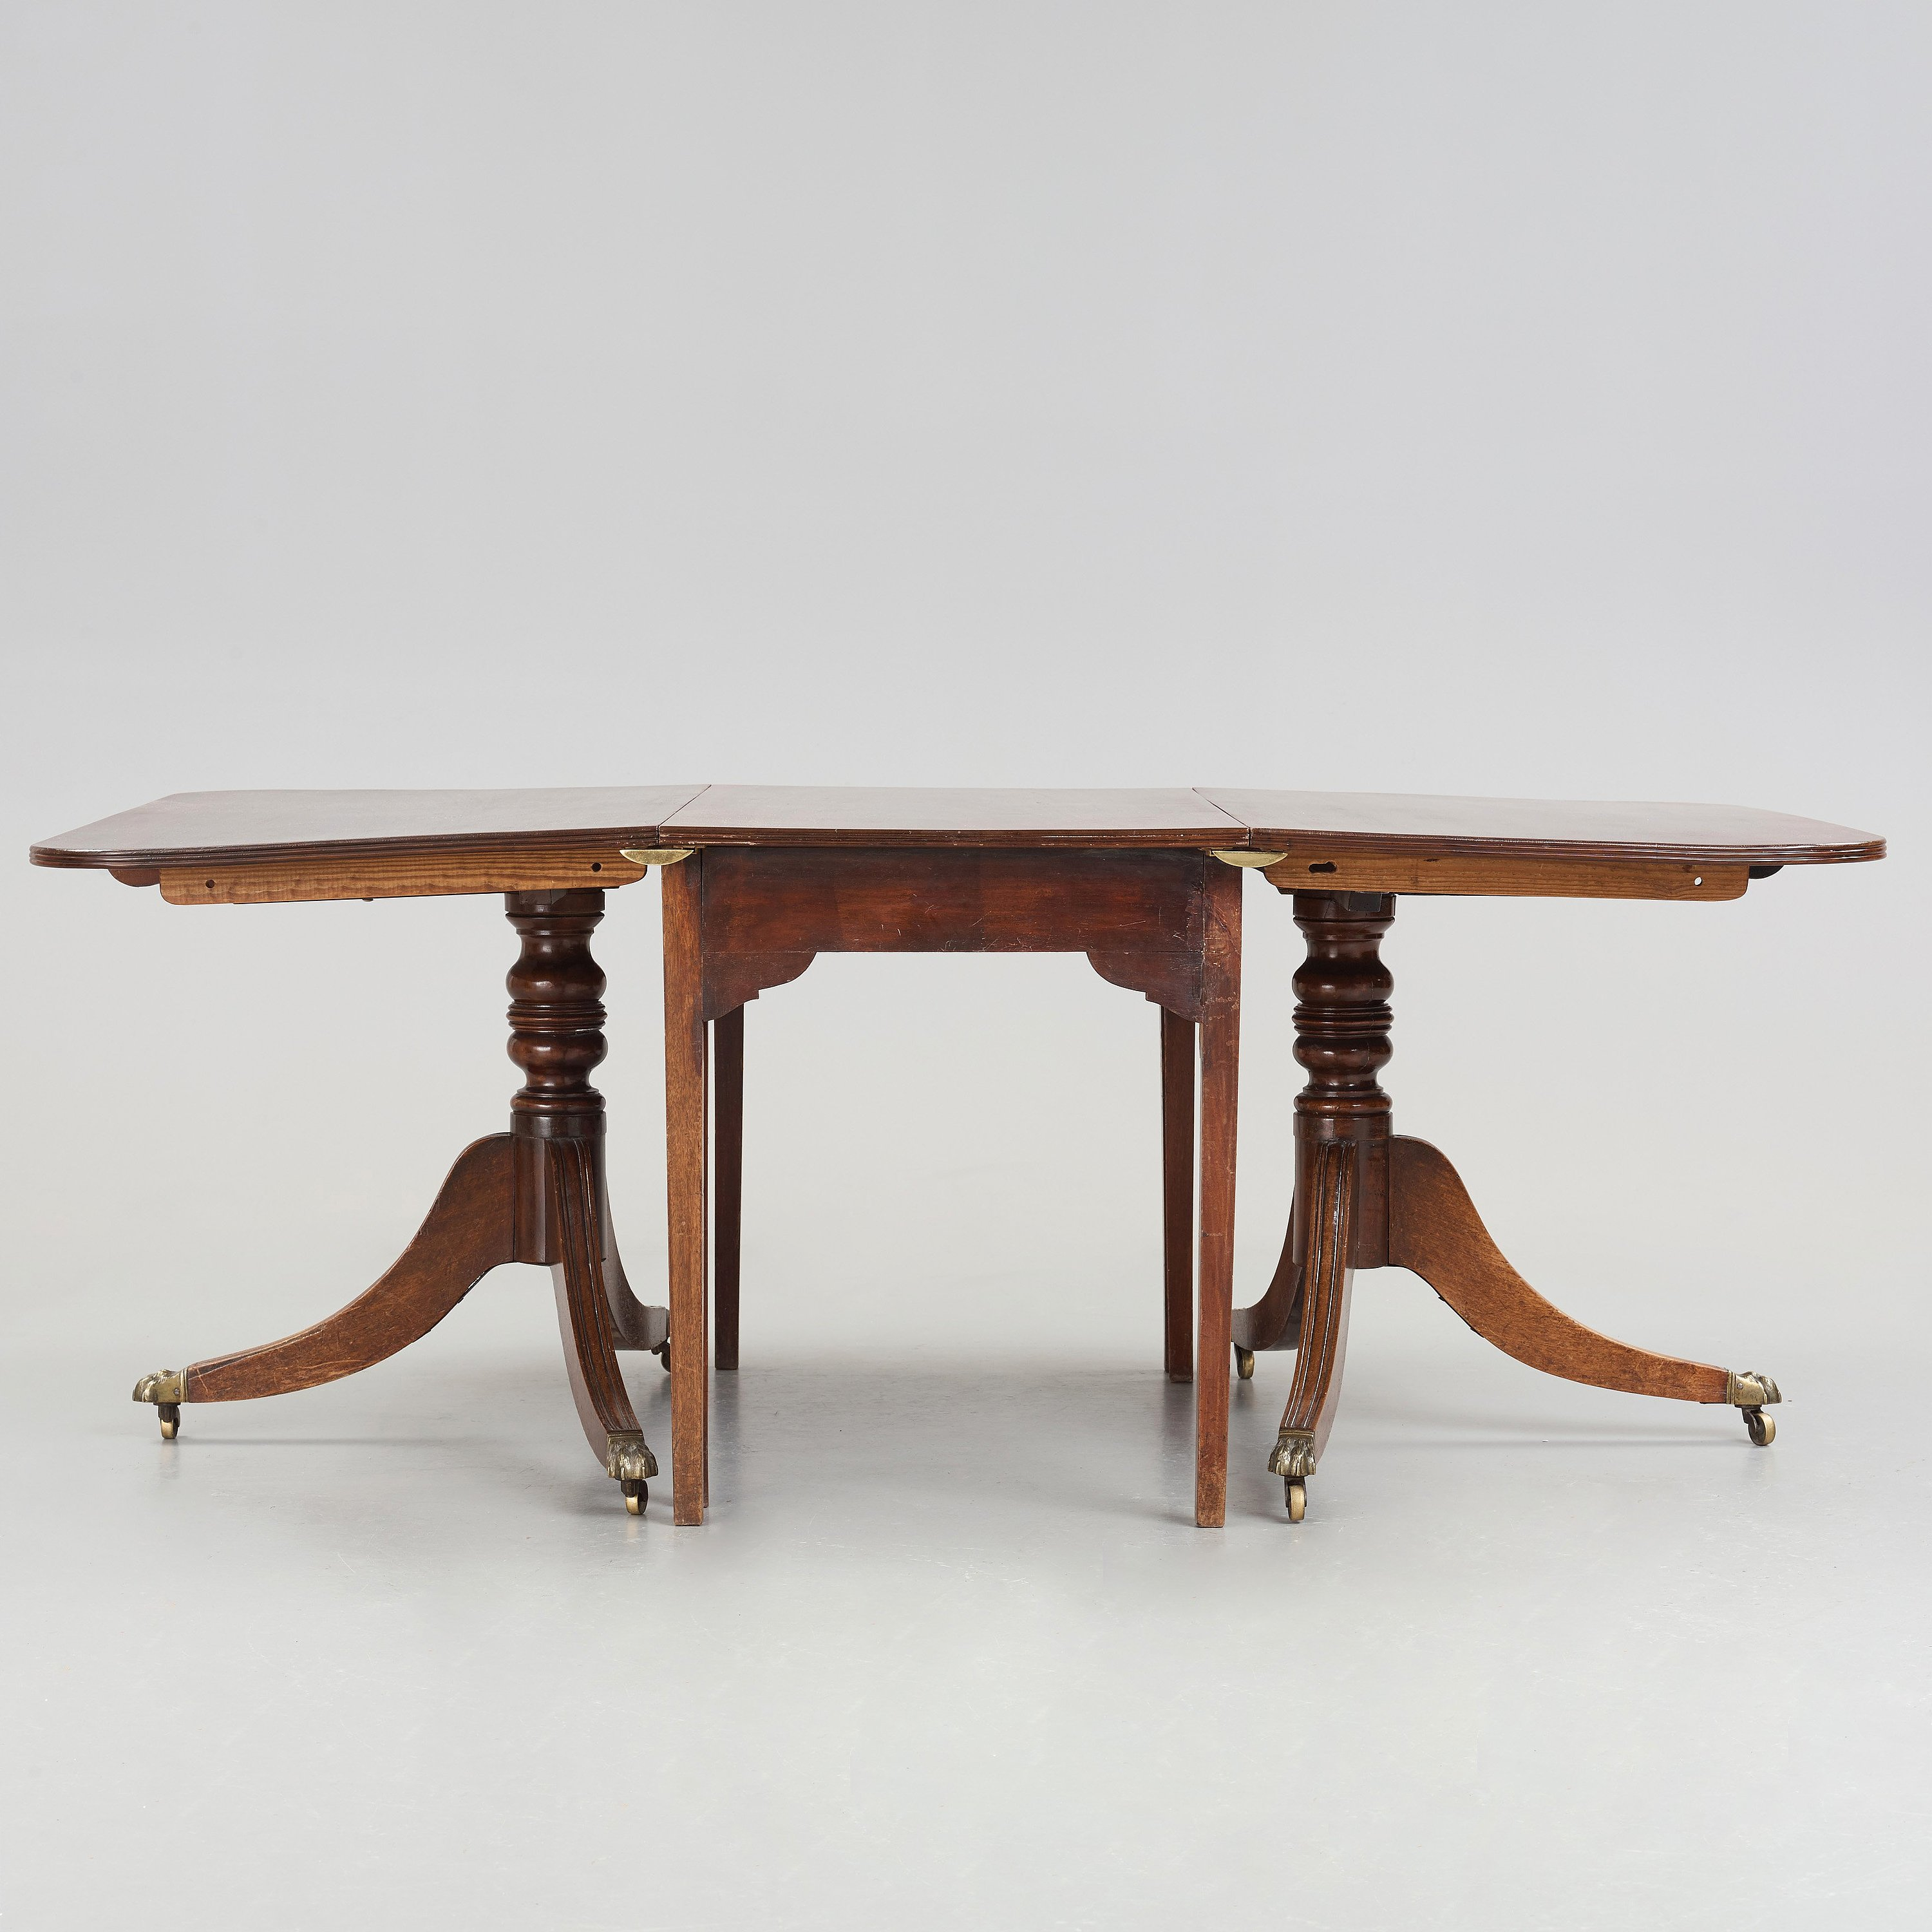 An English dinner table, beginning of the 20th century